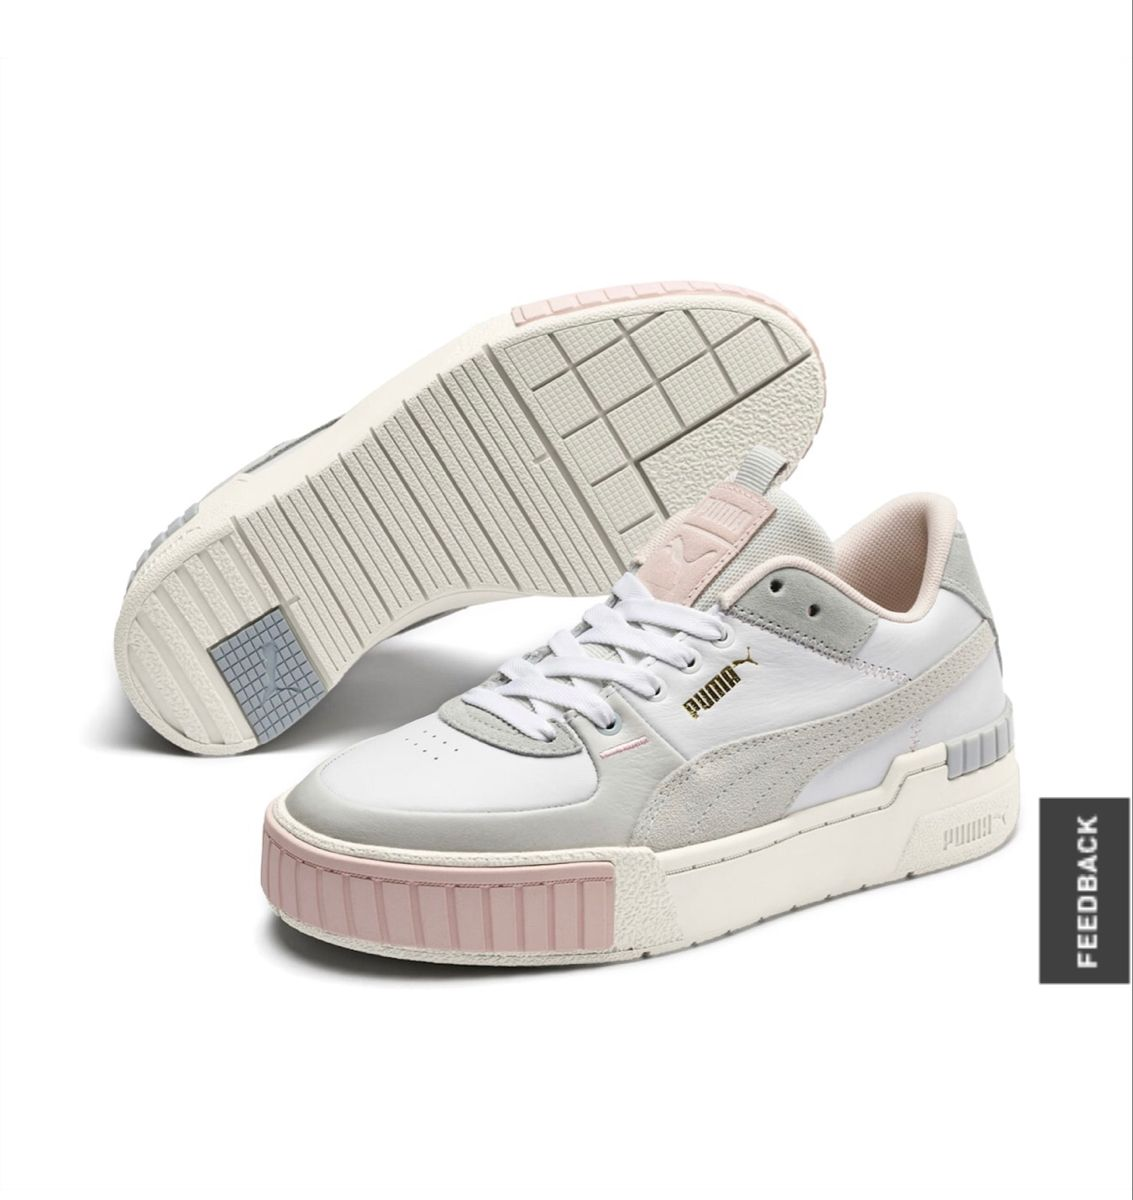 Cali Sport Women's Sneakers | Puma shoes women, Womens ...